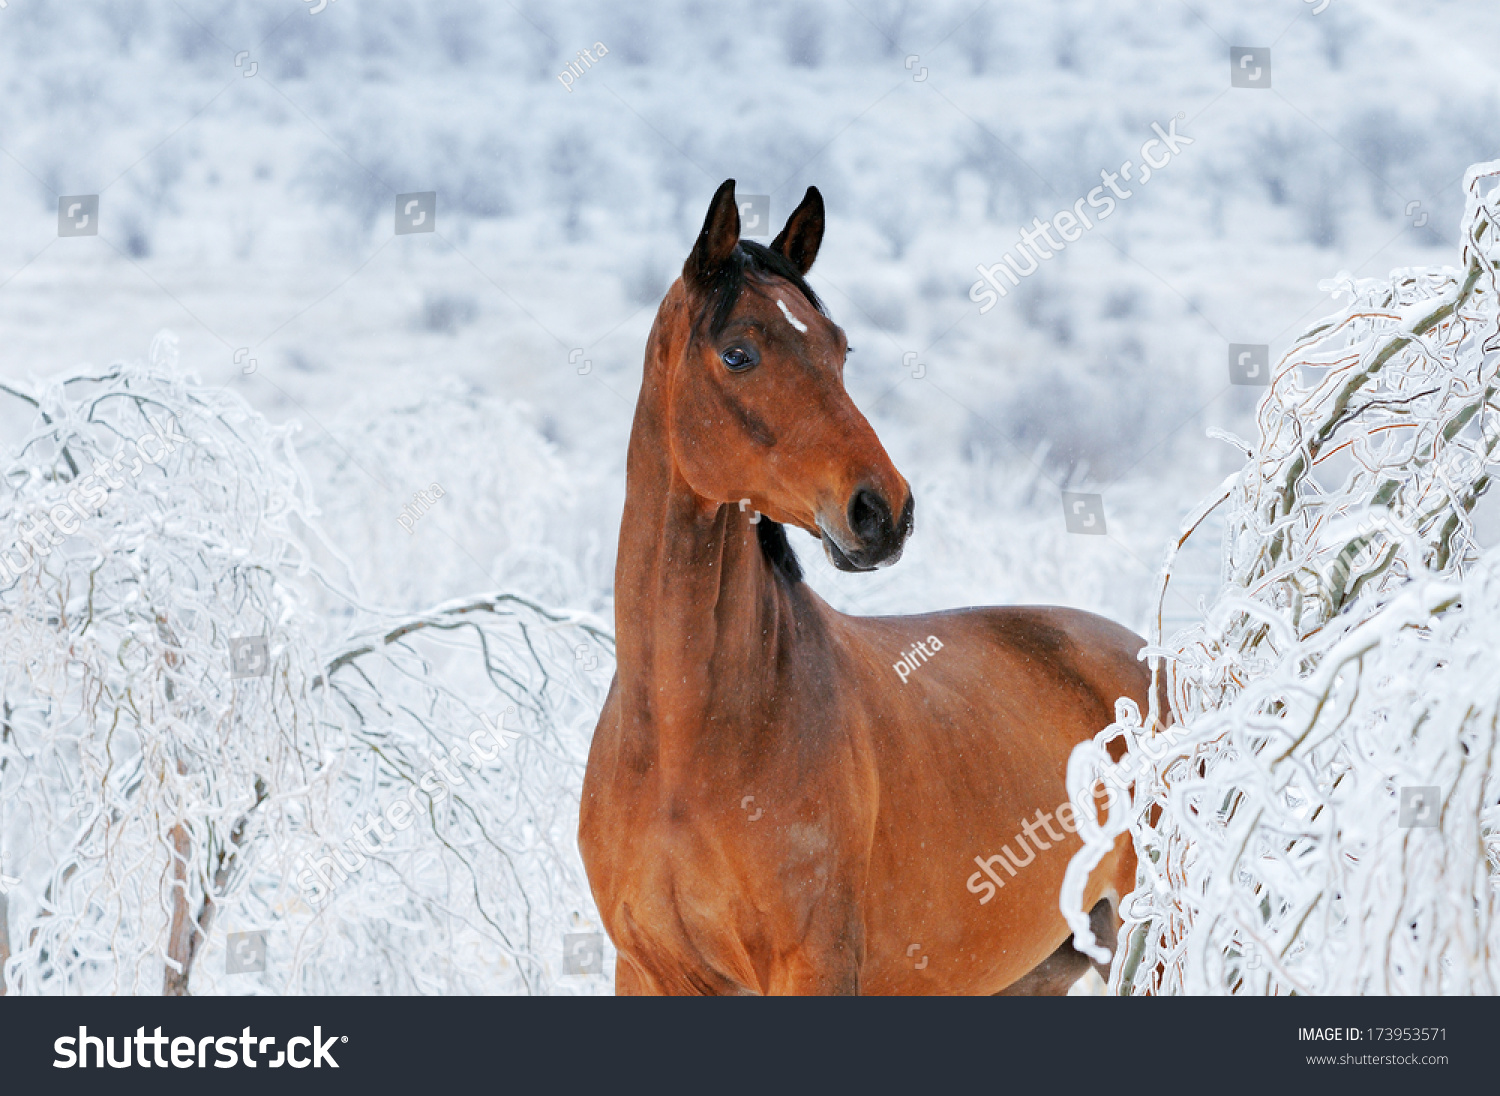 Beautiful Bay Horse Magic Winter Forest Stock Photo Edit Now 173953571